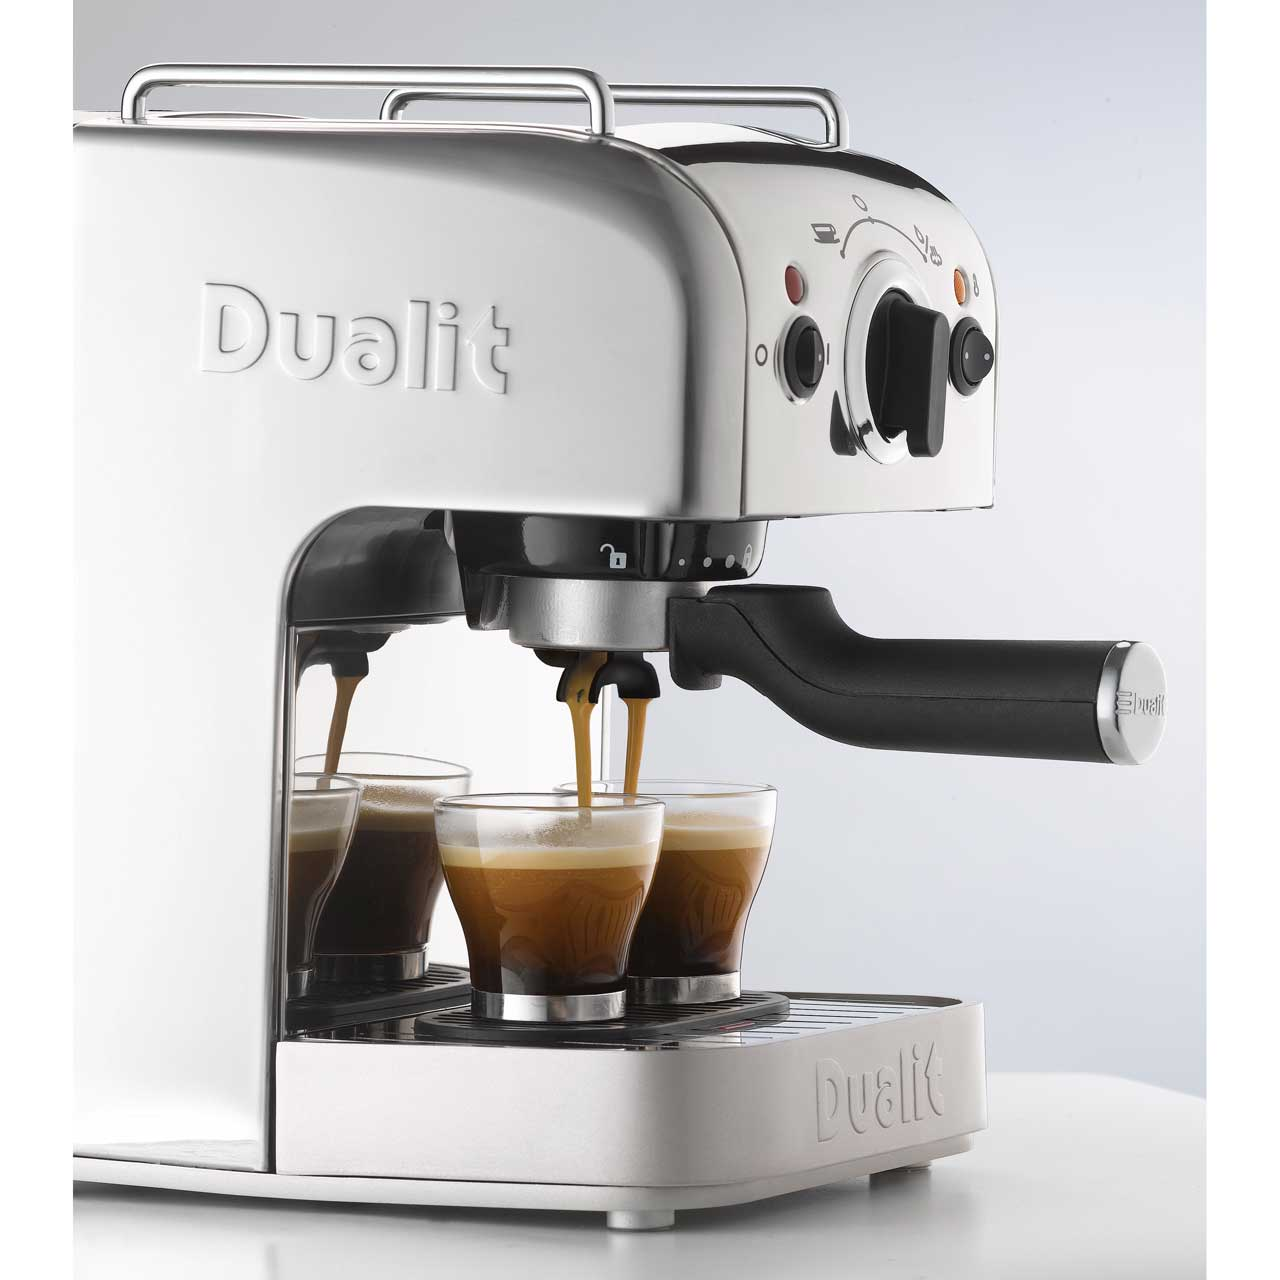 Electronic What To Look For When Buying A Coffee Machine best coffee machines rated buy ao com